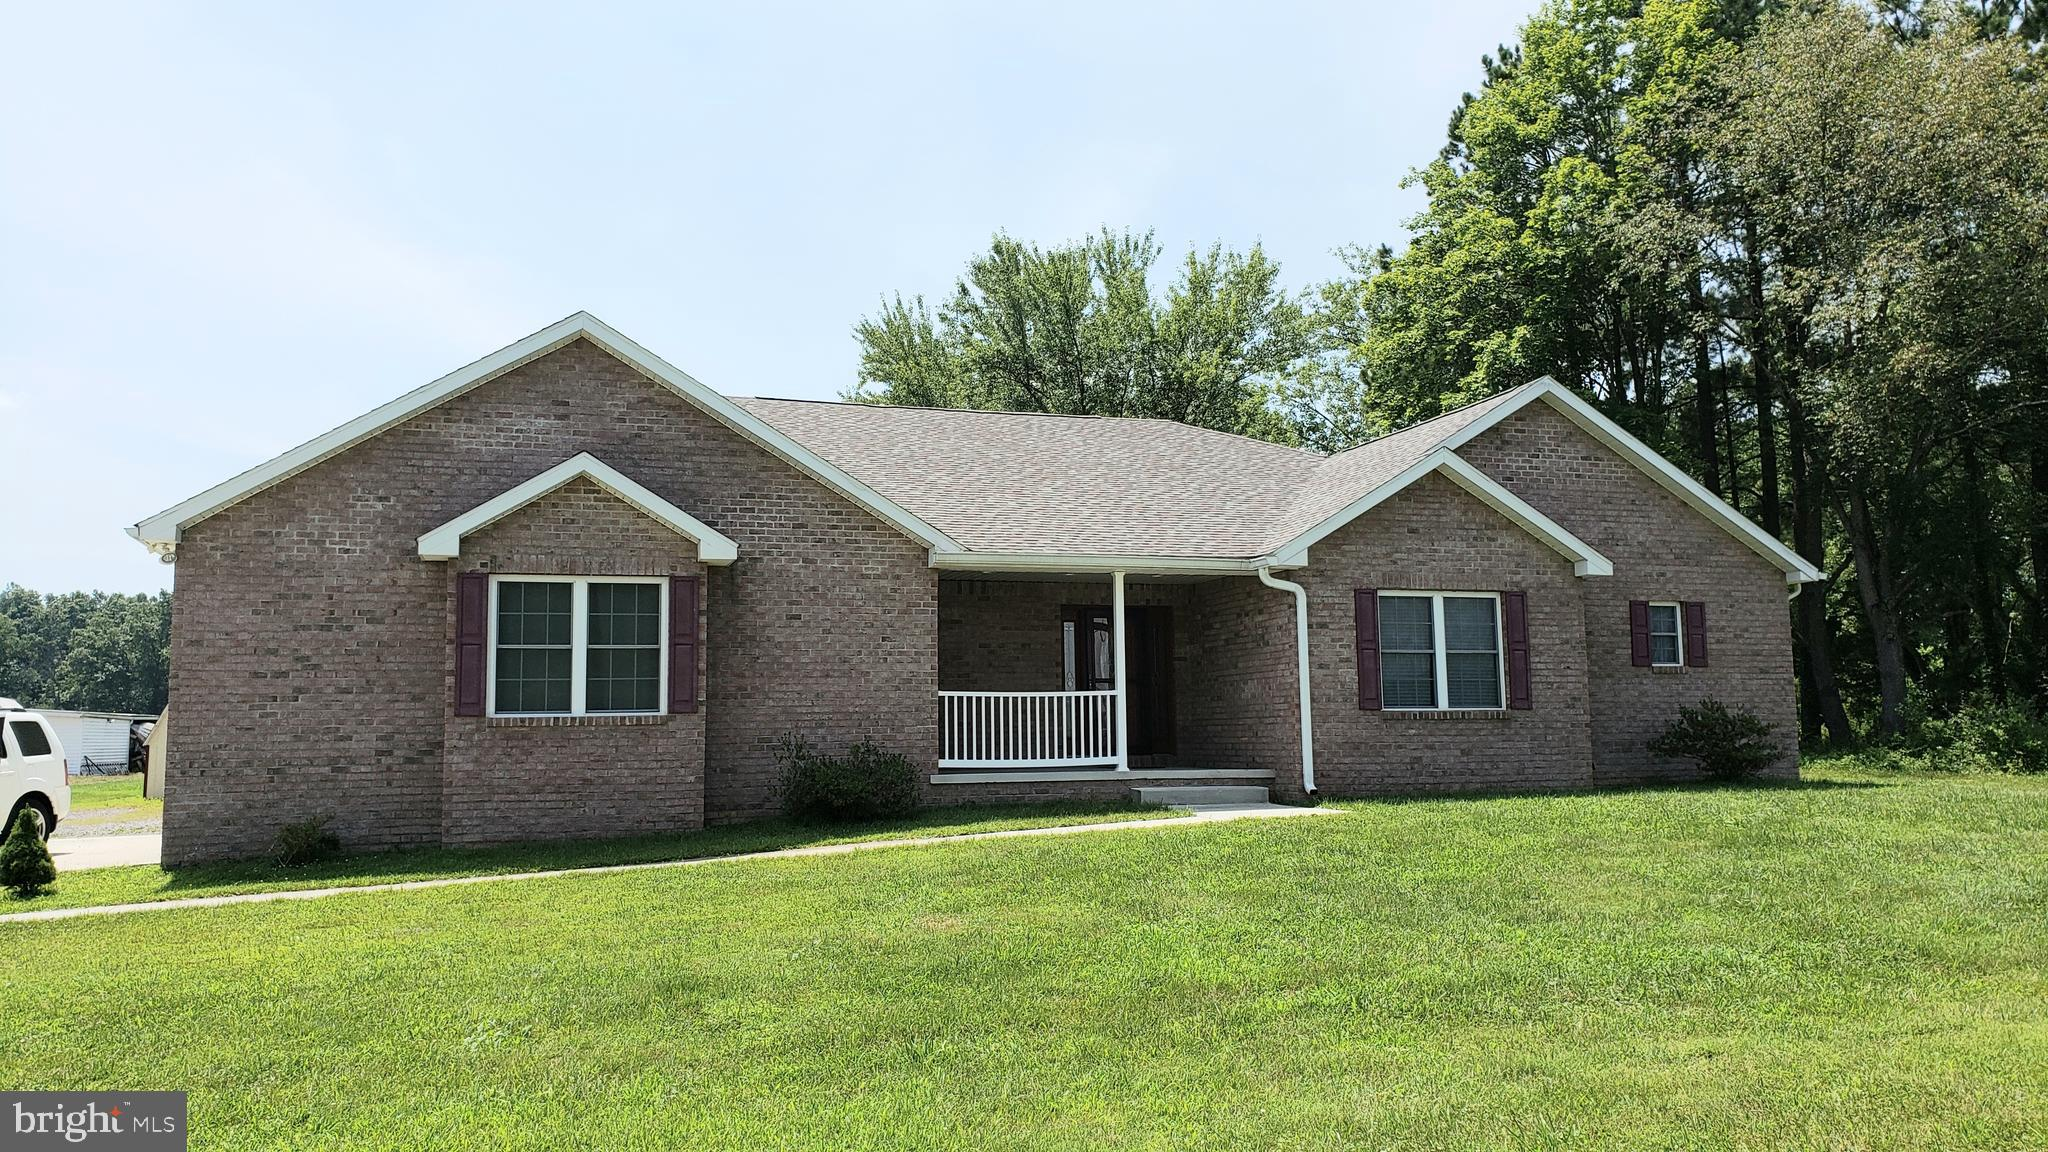 11030 MEXICO FARMS ROAD, CUMBERLAND, MD 21501